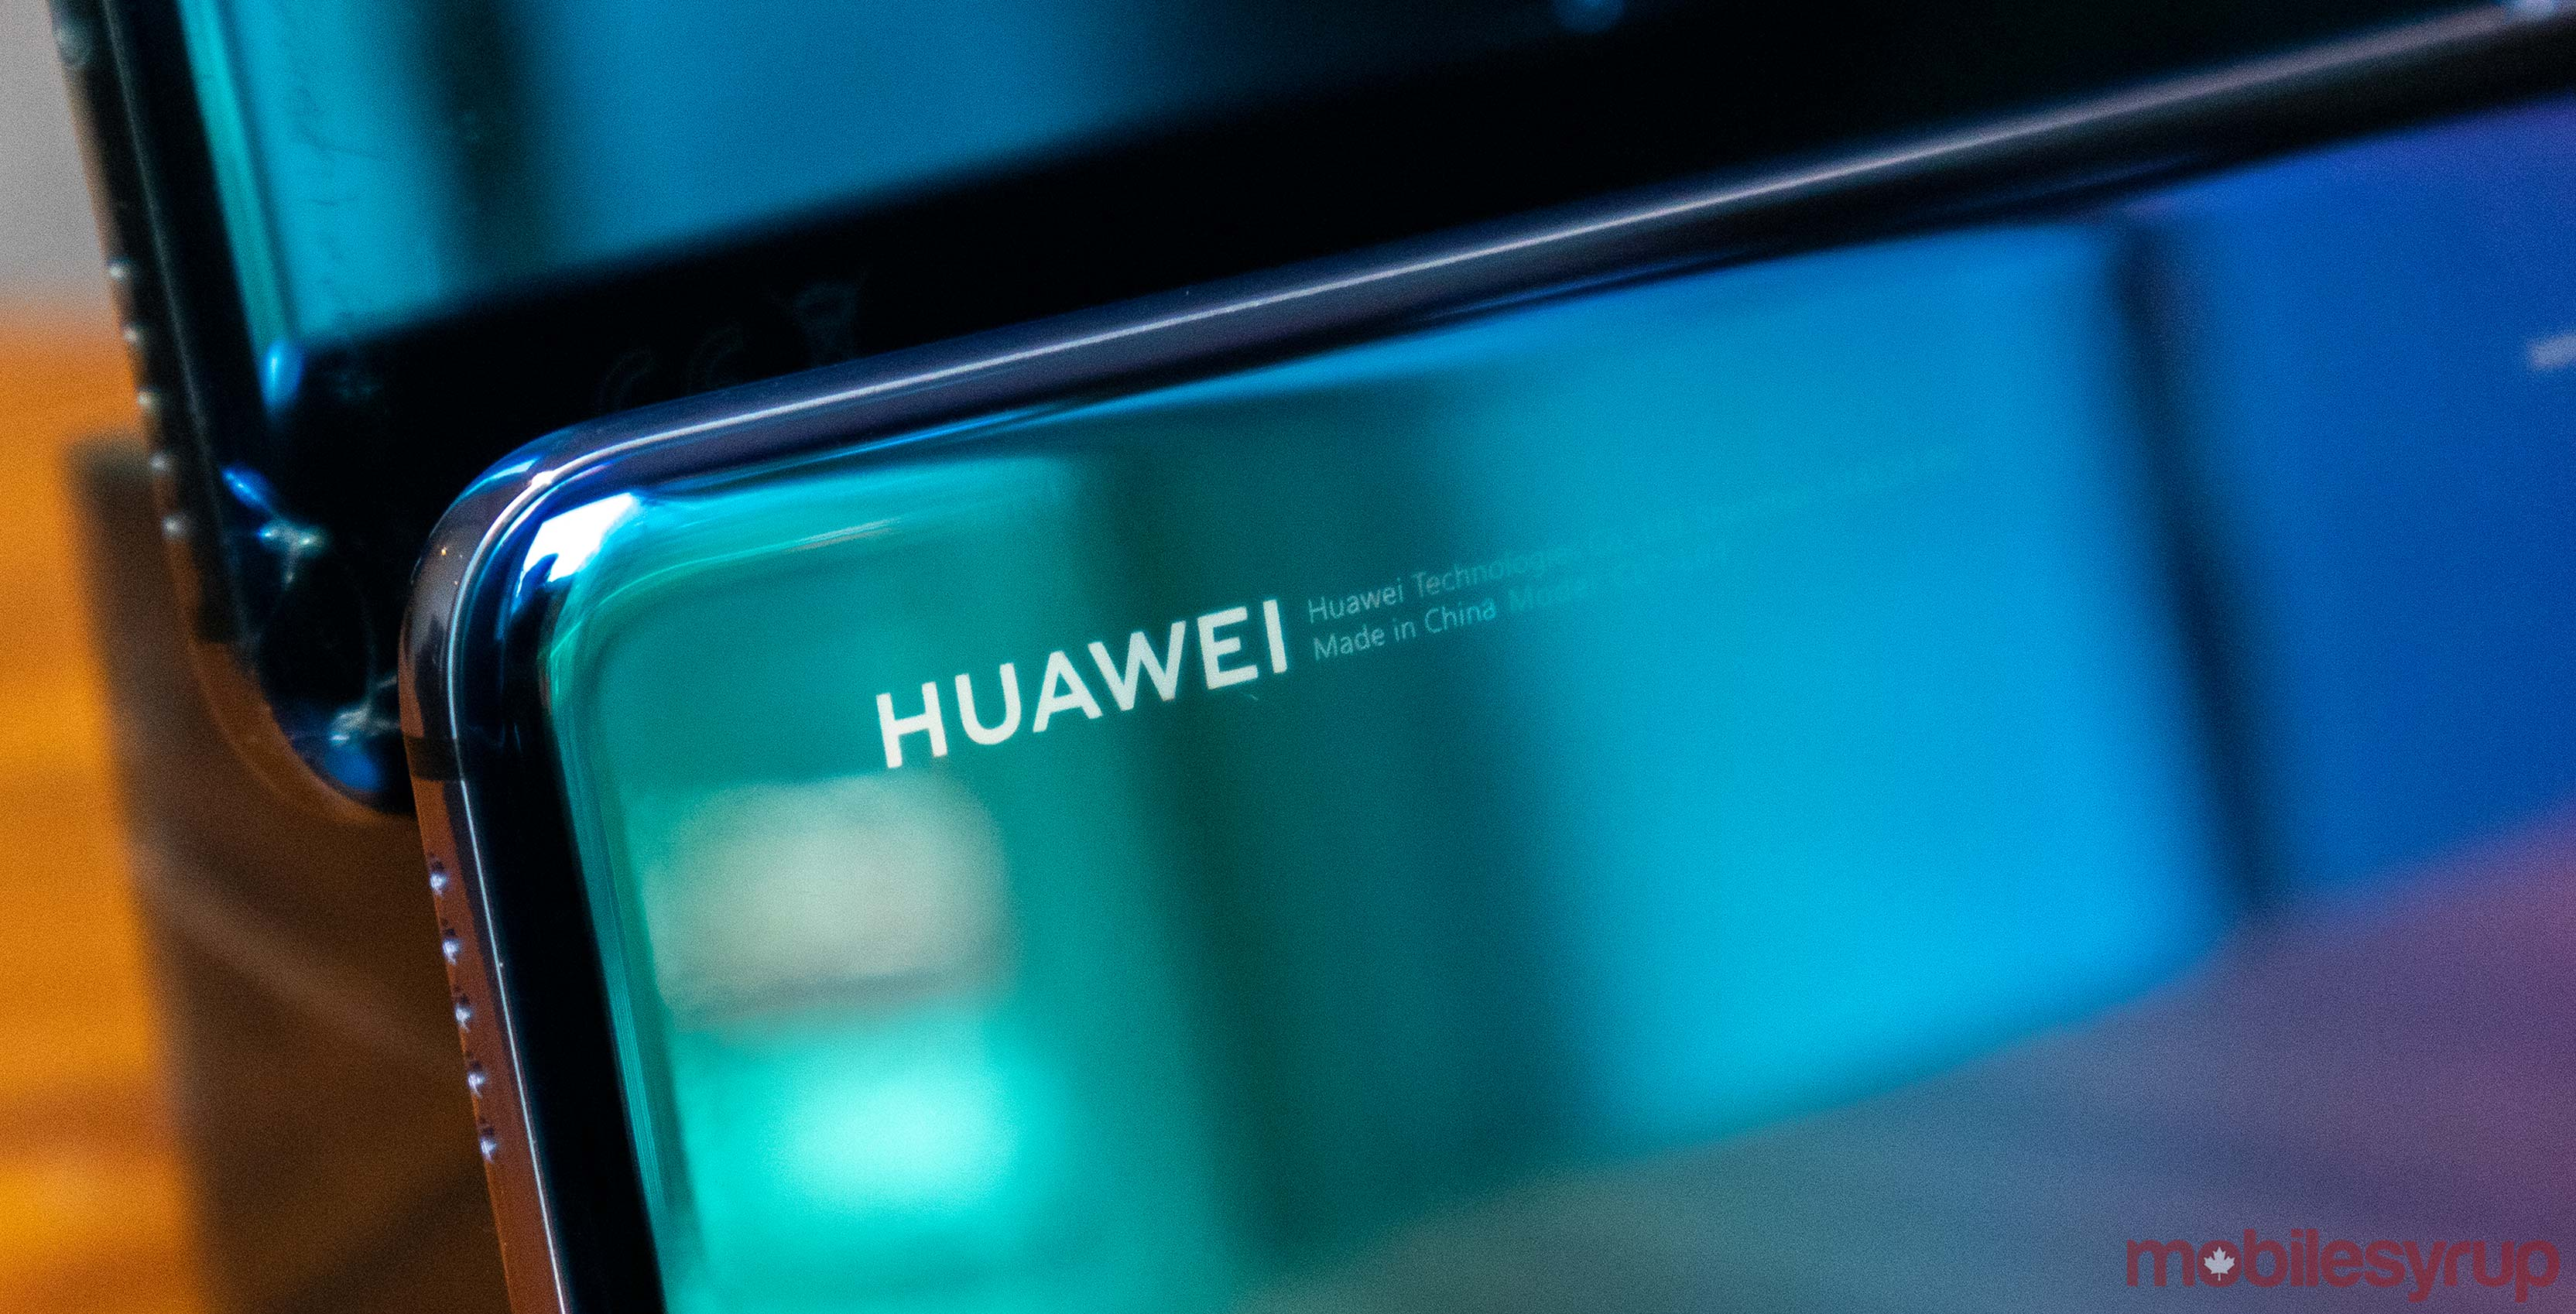 5 things about China's Huawei after executive's arrest